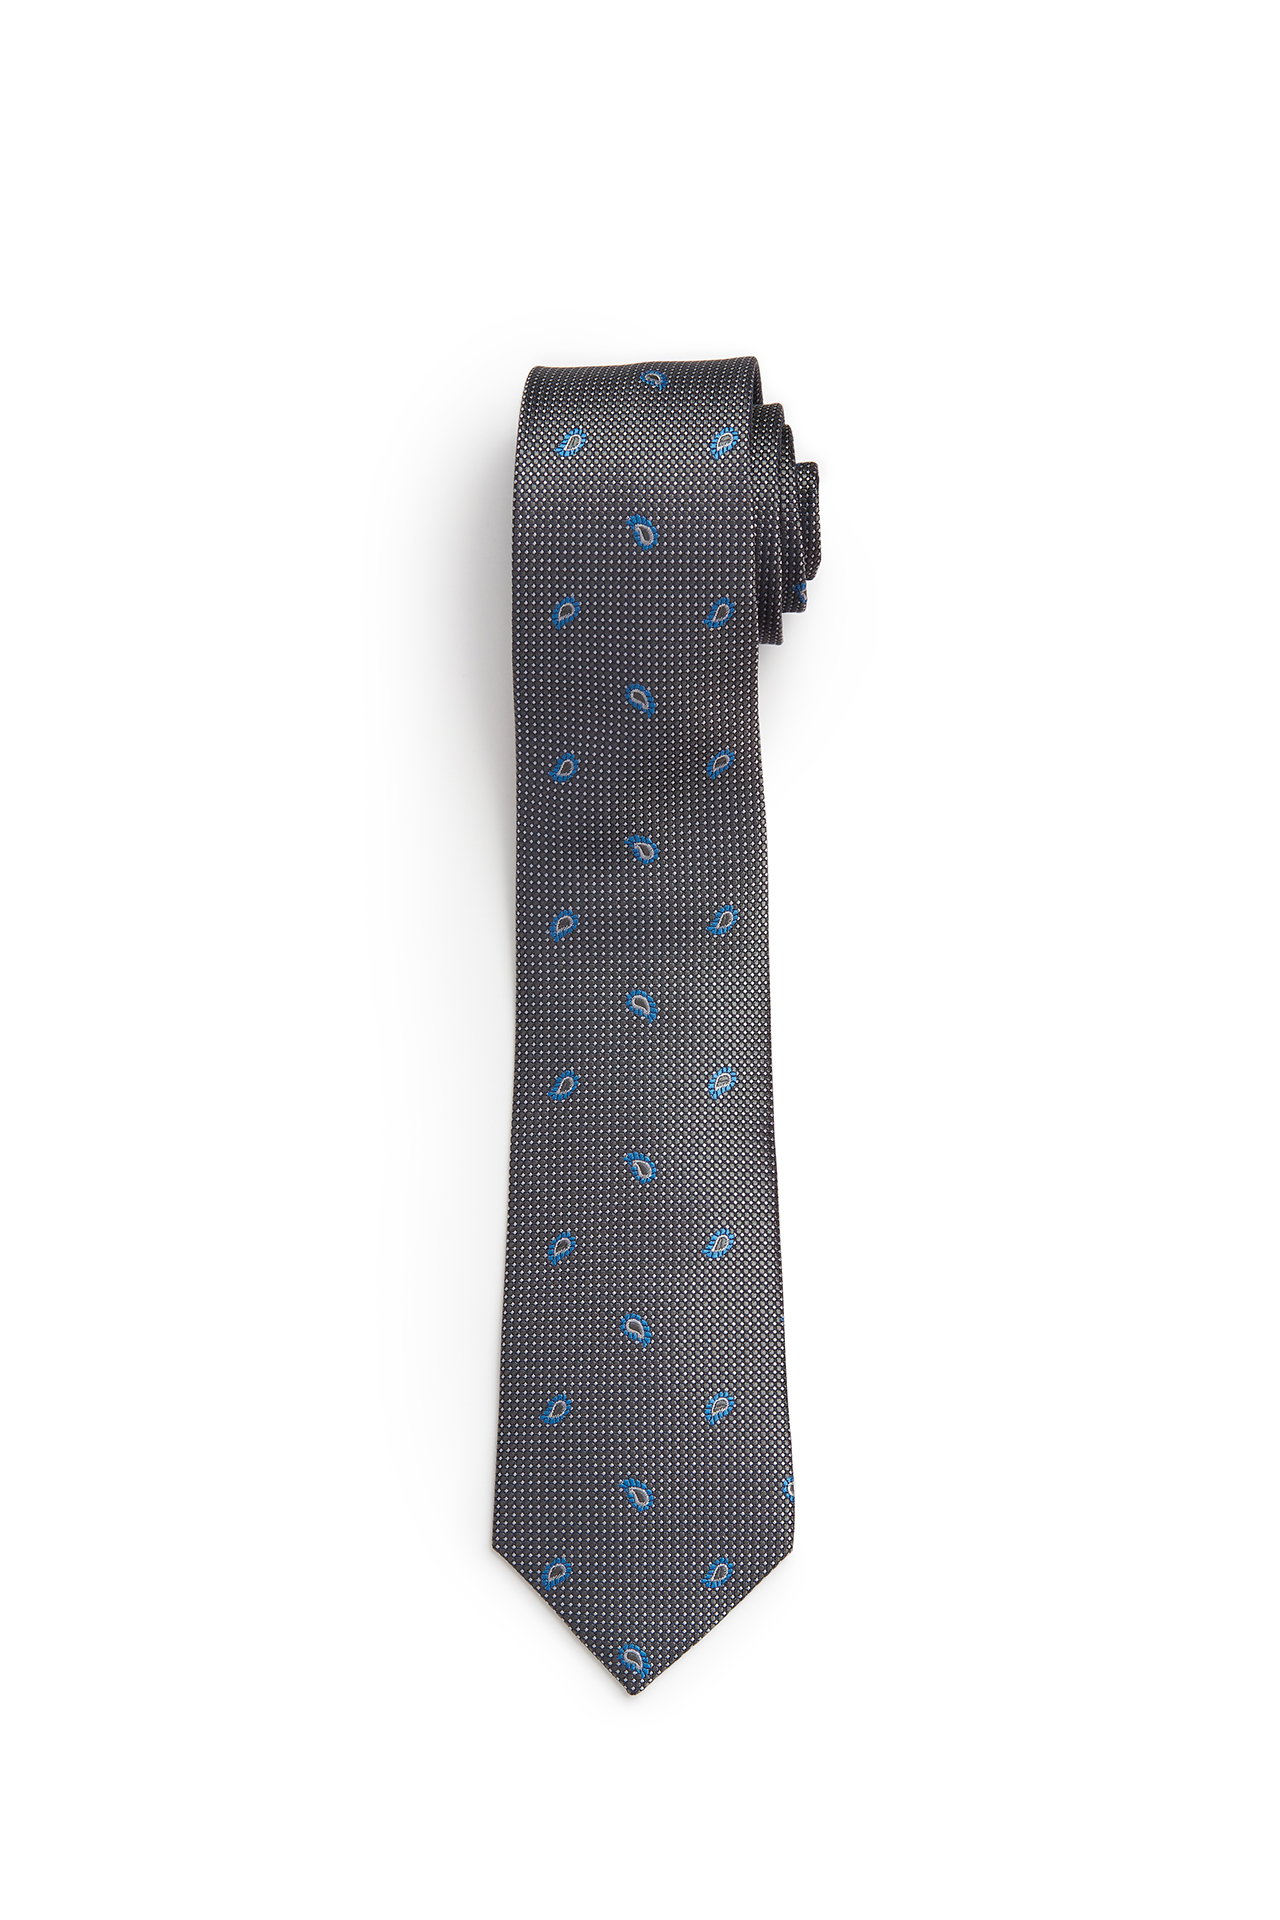 Grey with French Blue Mini Paisley Tie